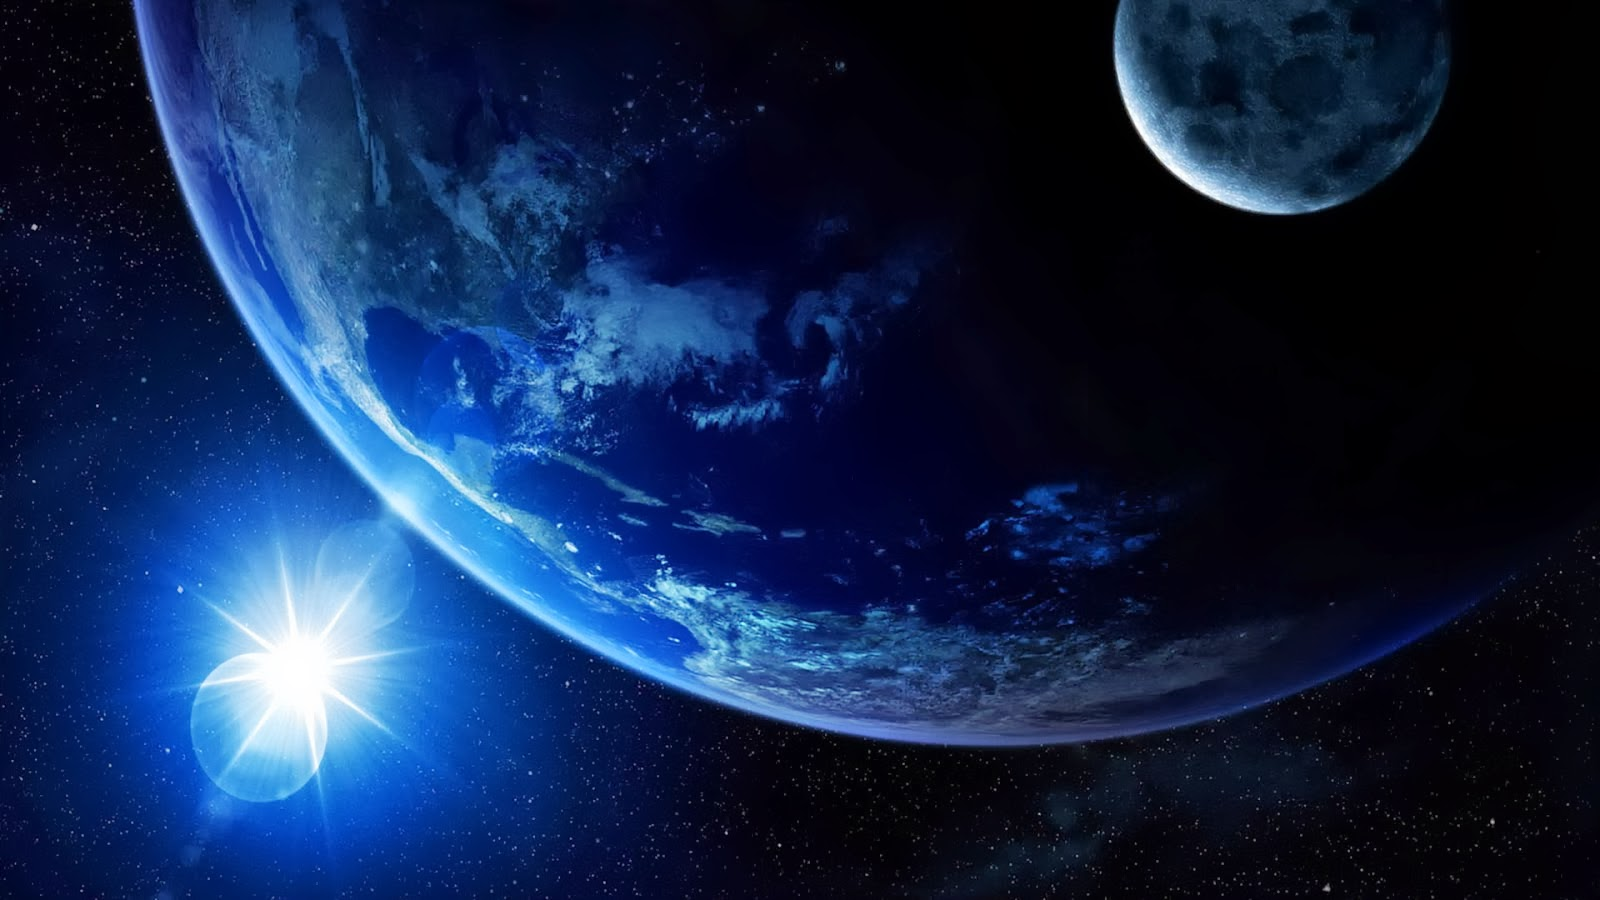 Space Wallpapers High Resolution: Space Wallpaper 1080p